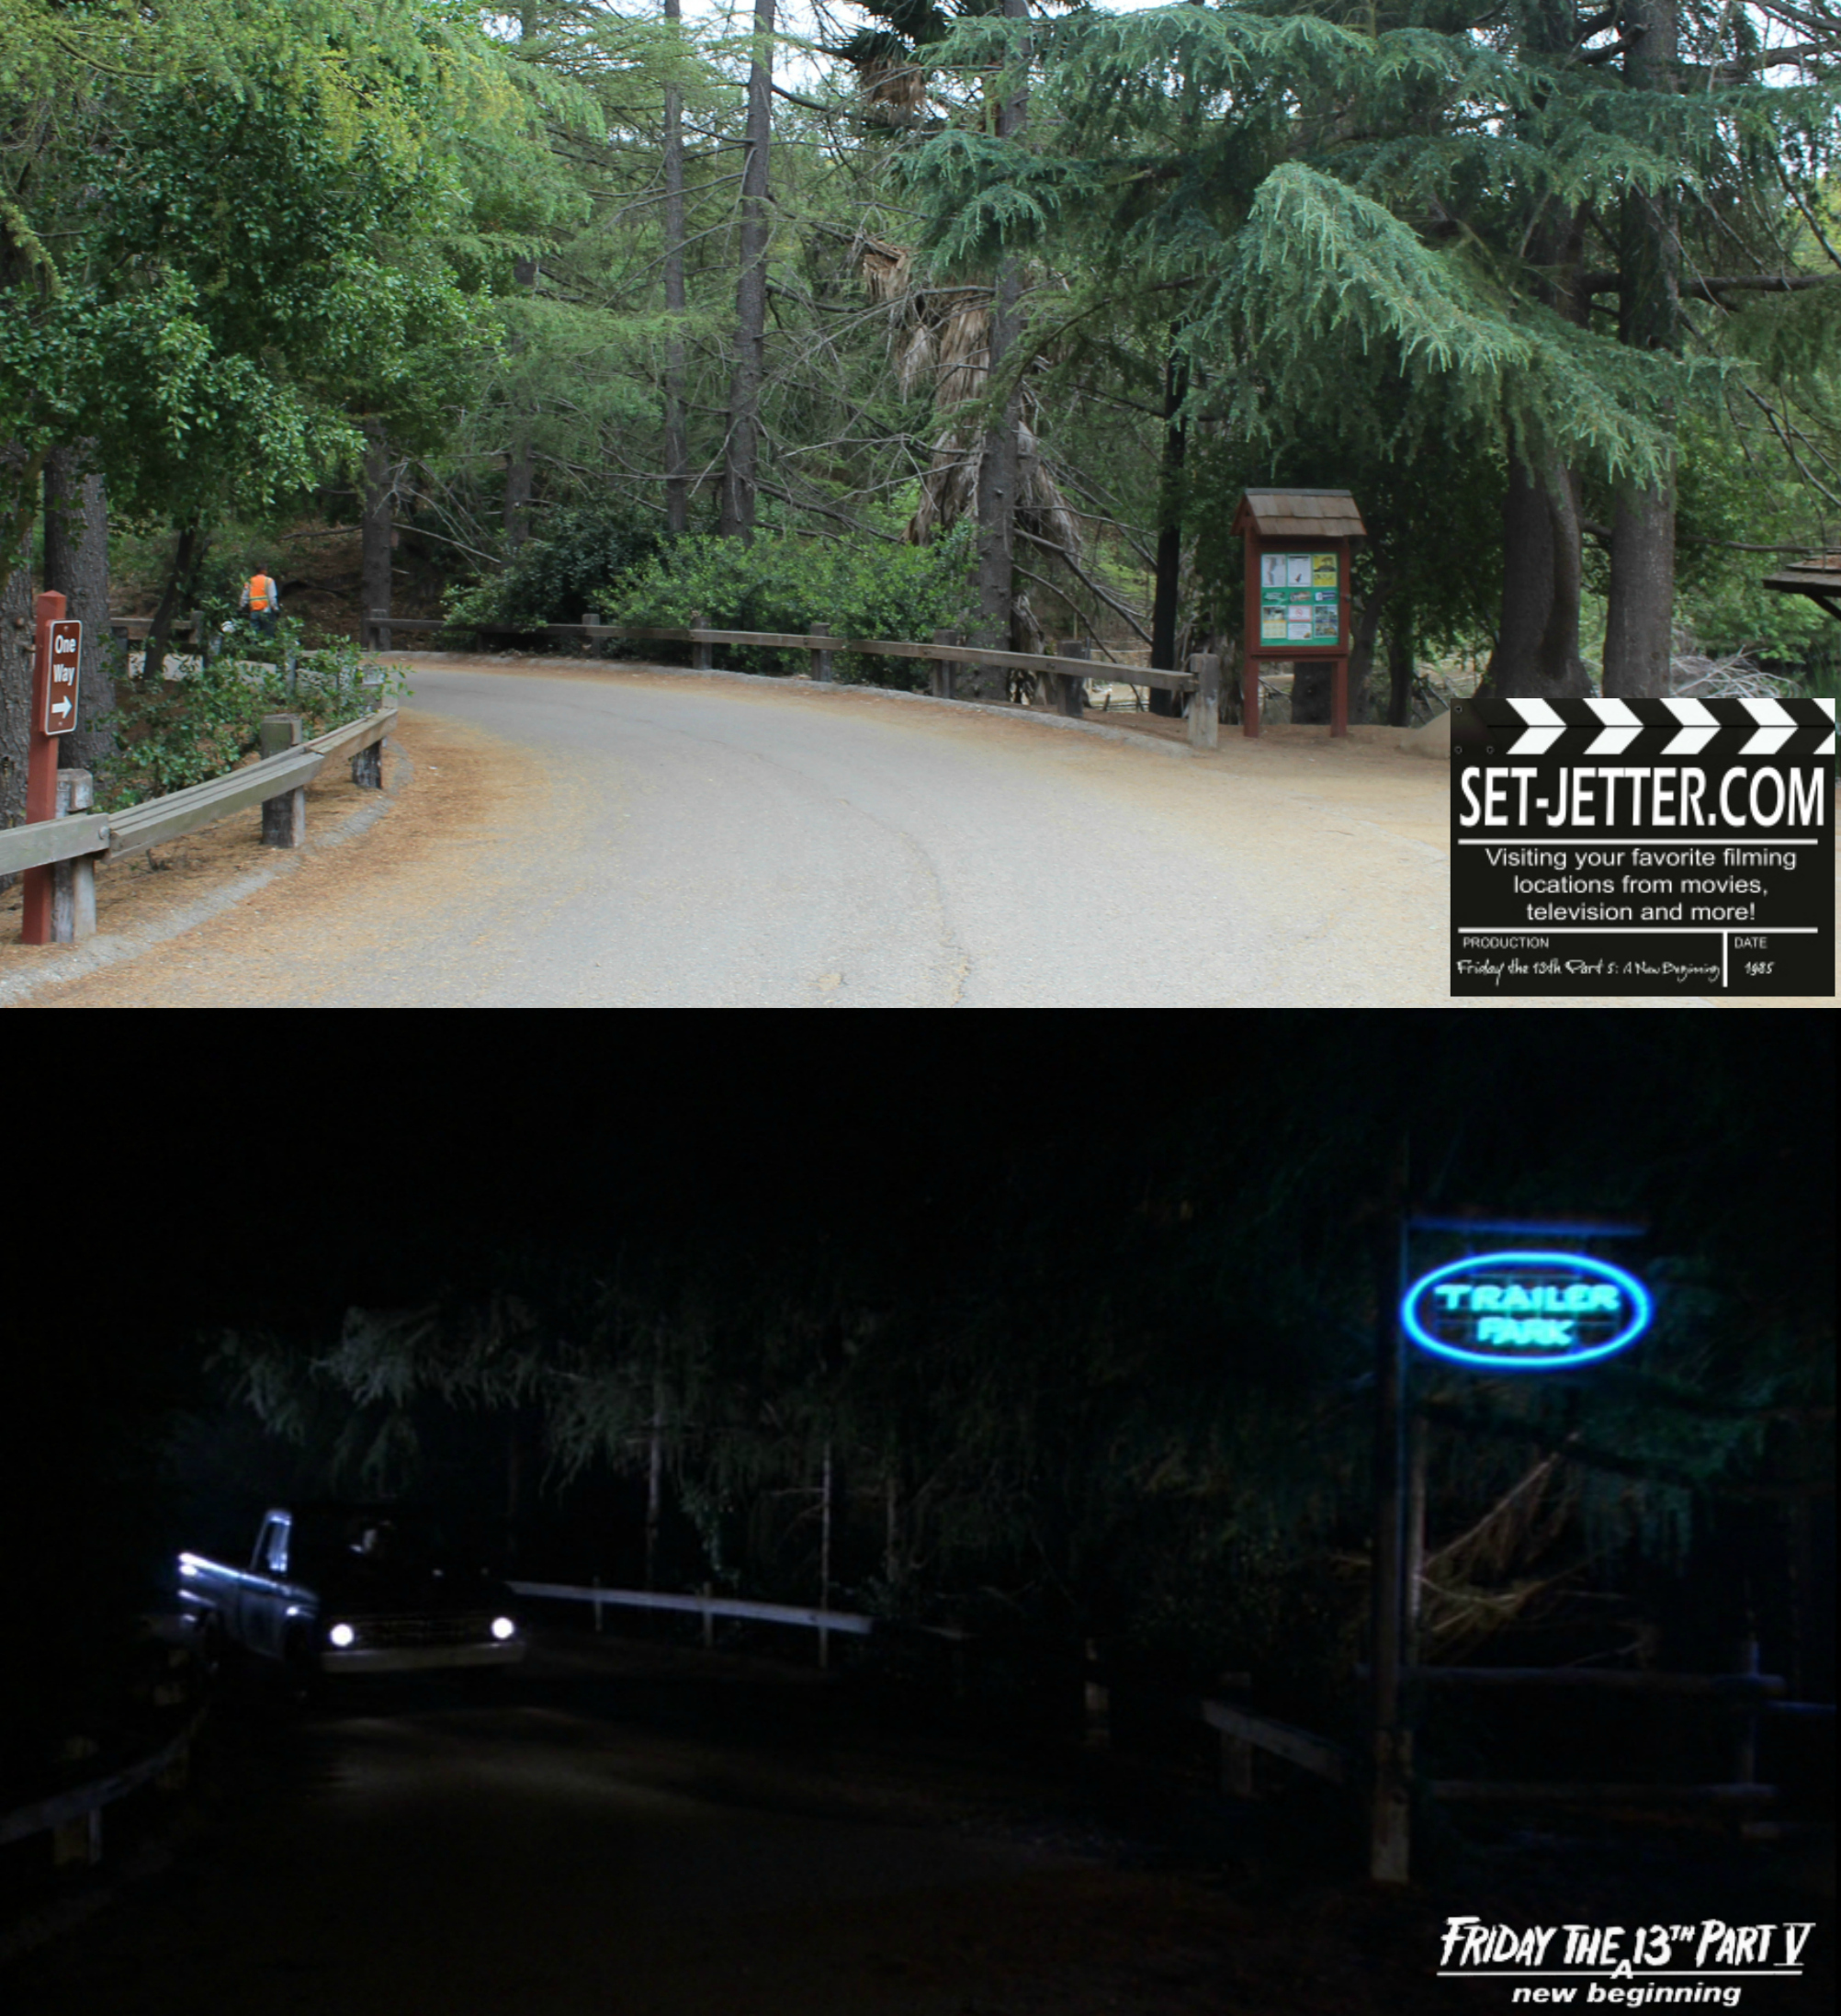 Friday the 13th Part V comparison 31.jpg